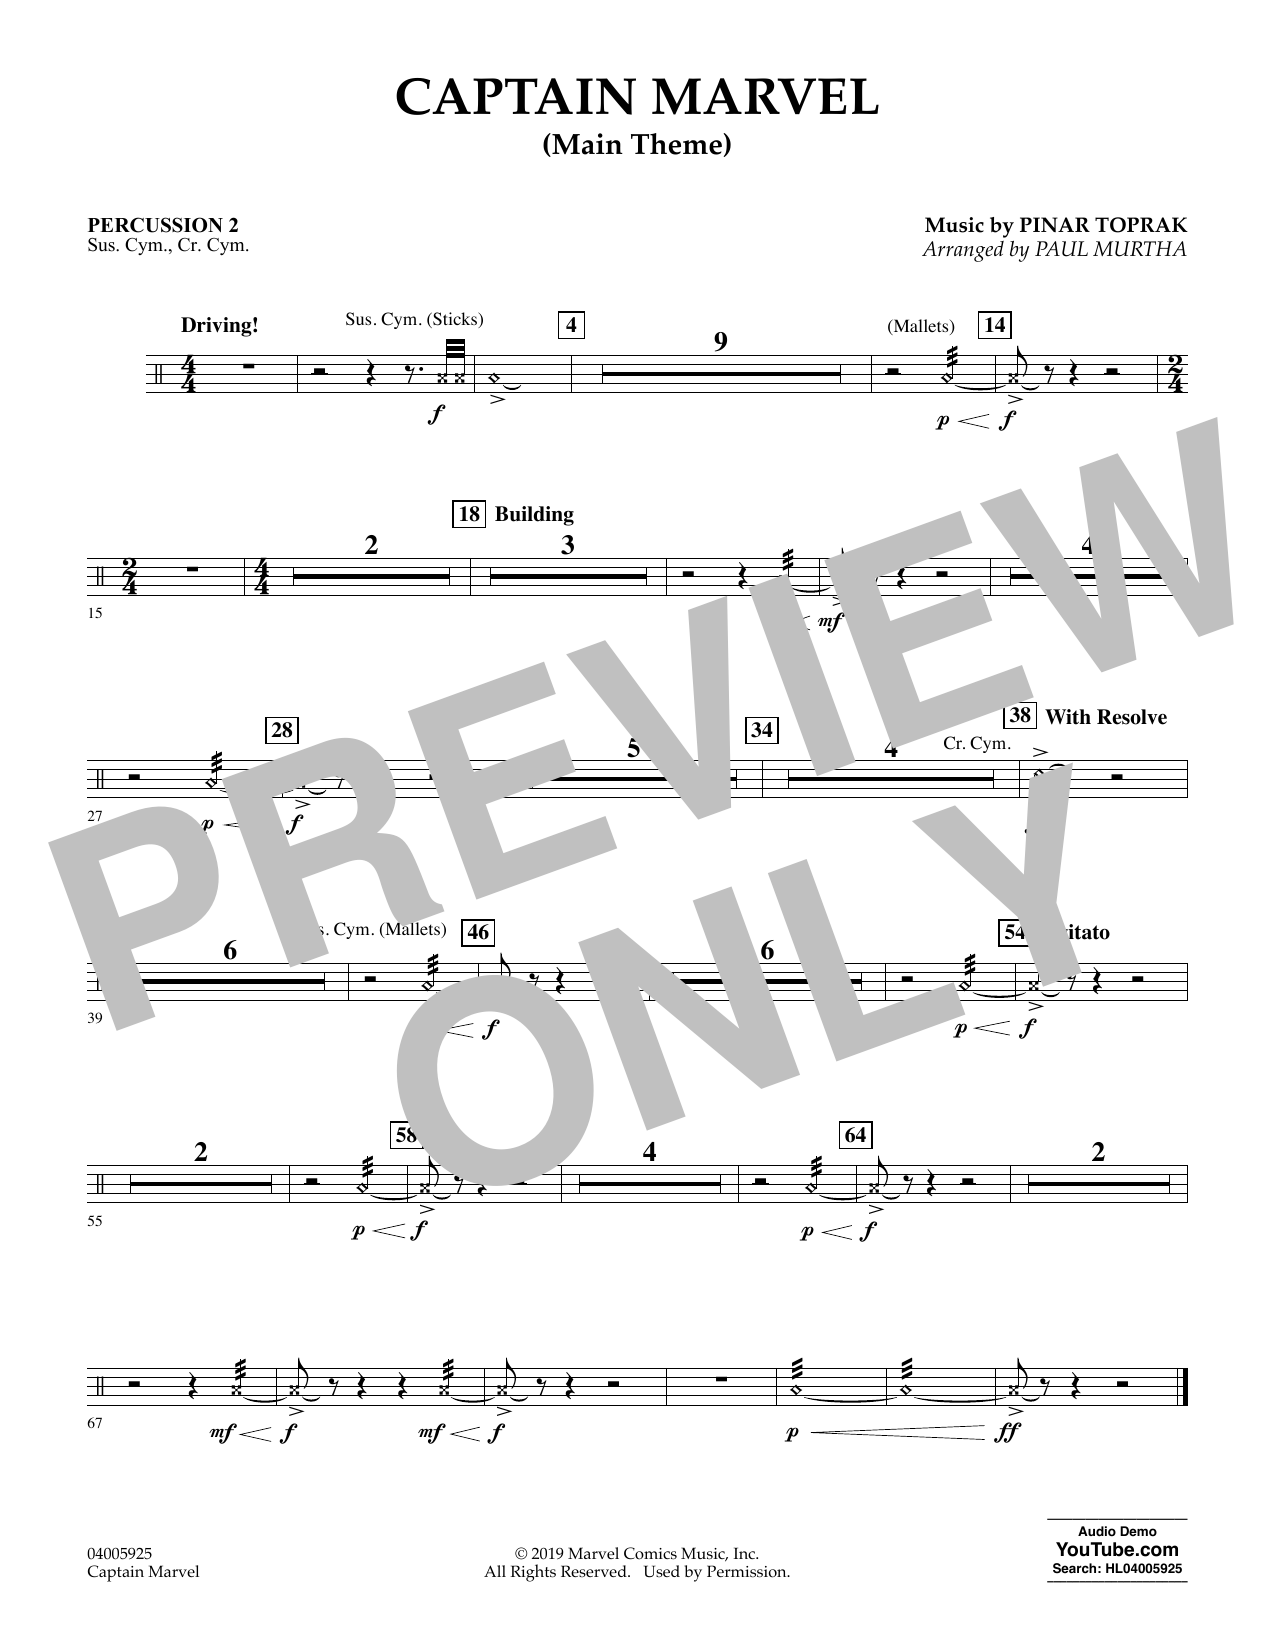 Pinar Toprak Captain Marvel (Main Theme) (arr. Paul Murtha) - Percussion 2 sheet music preview music notes and score for Concert Band including 1 page(s)